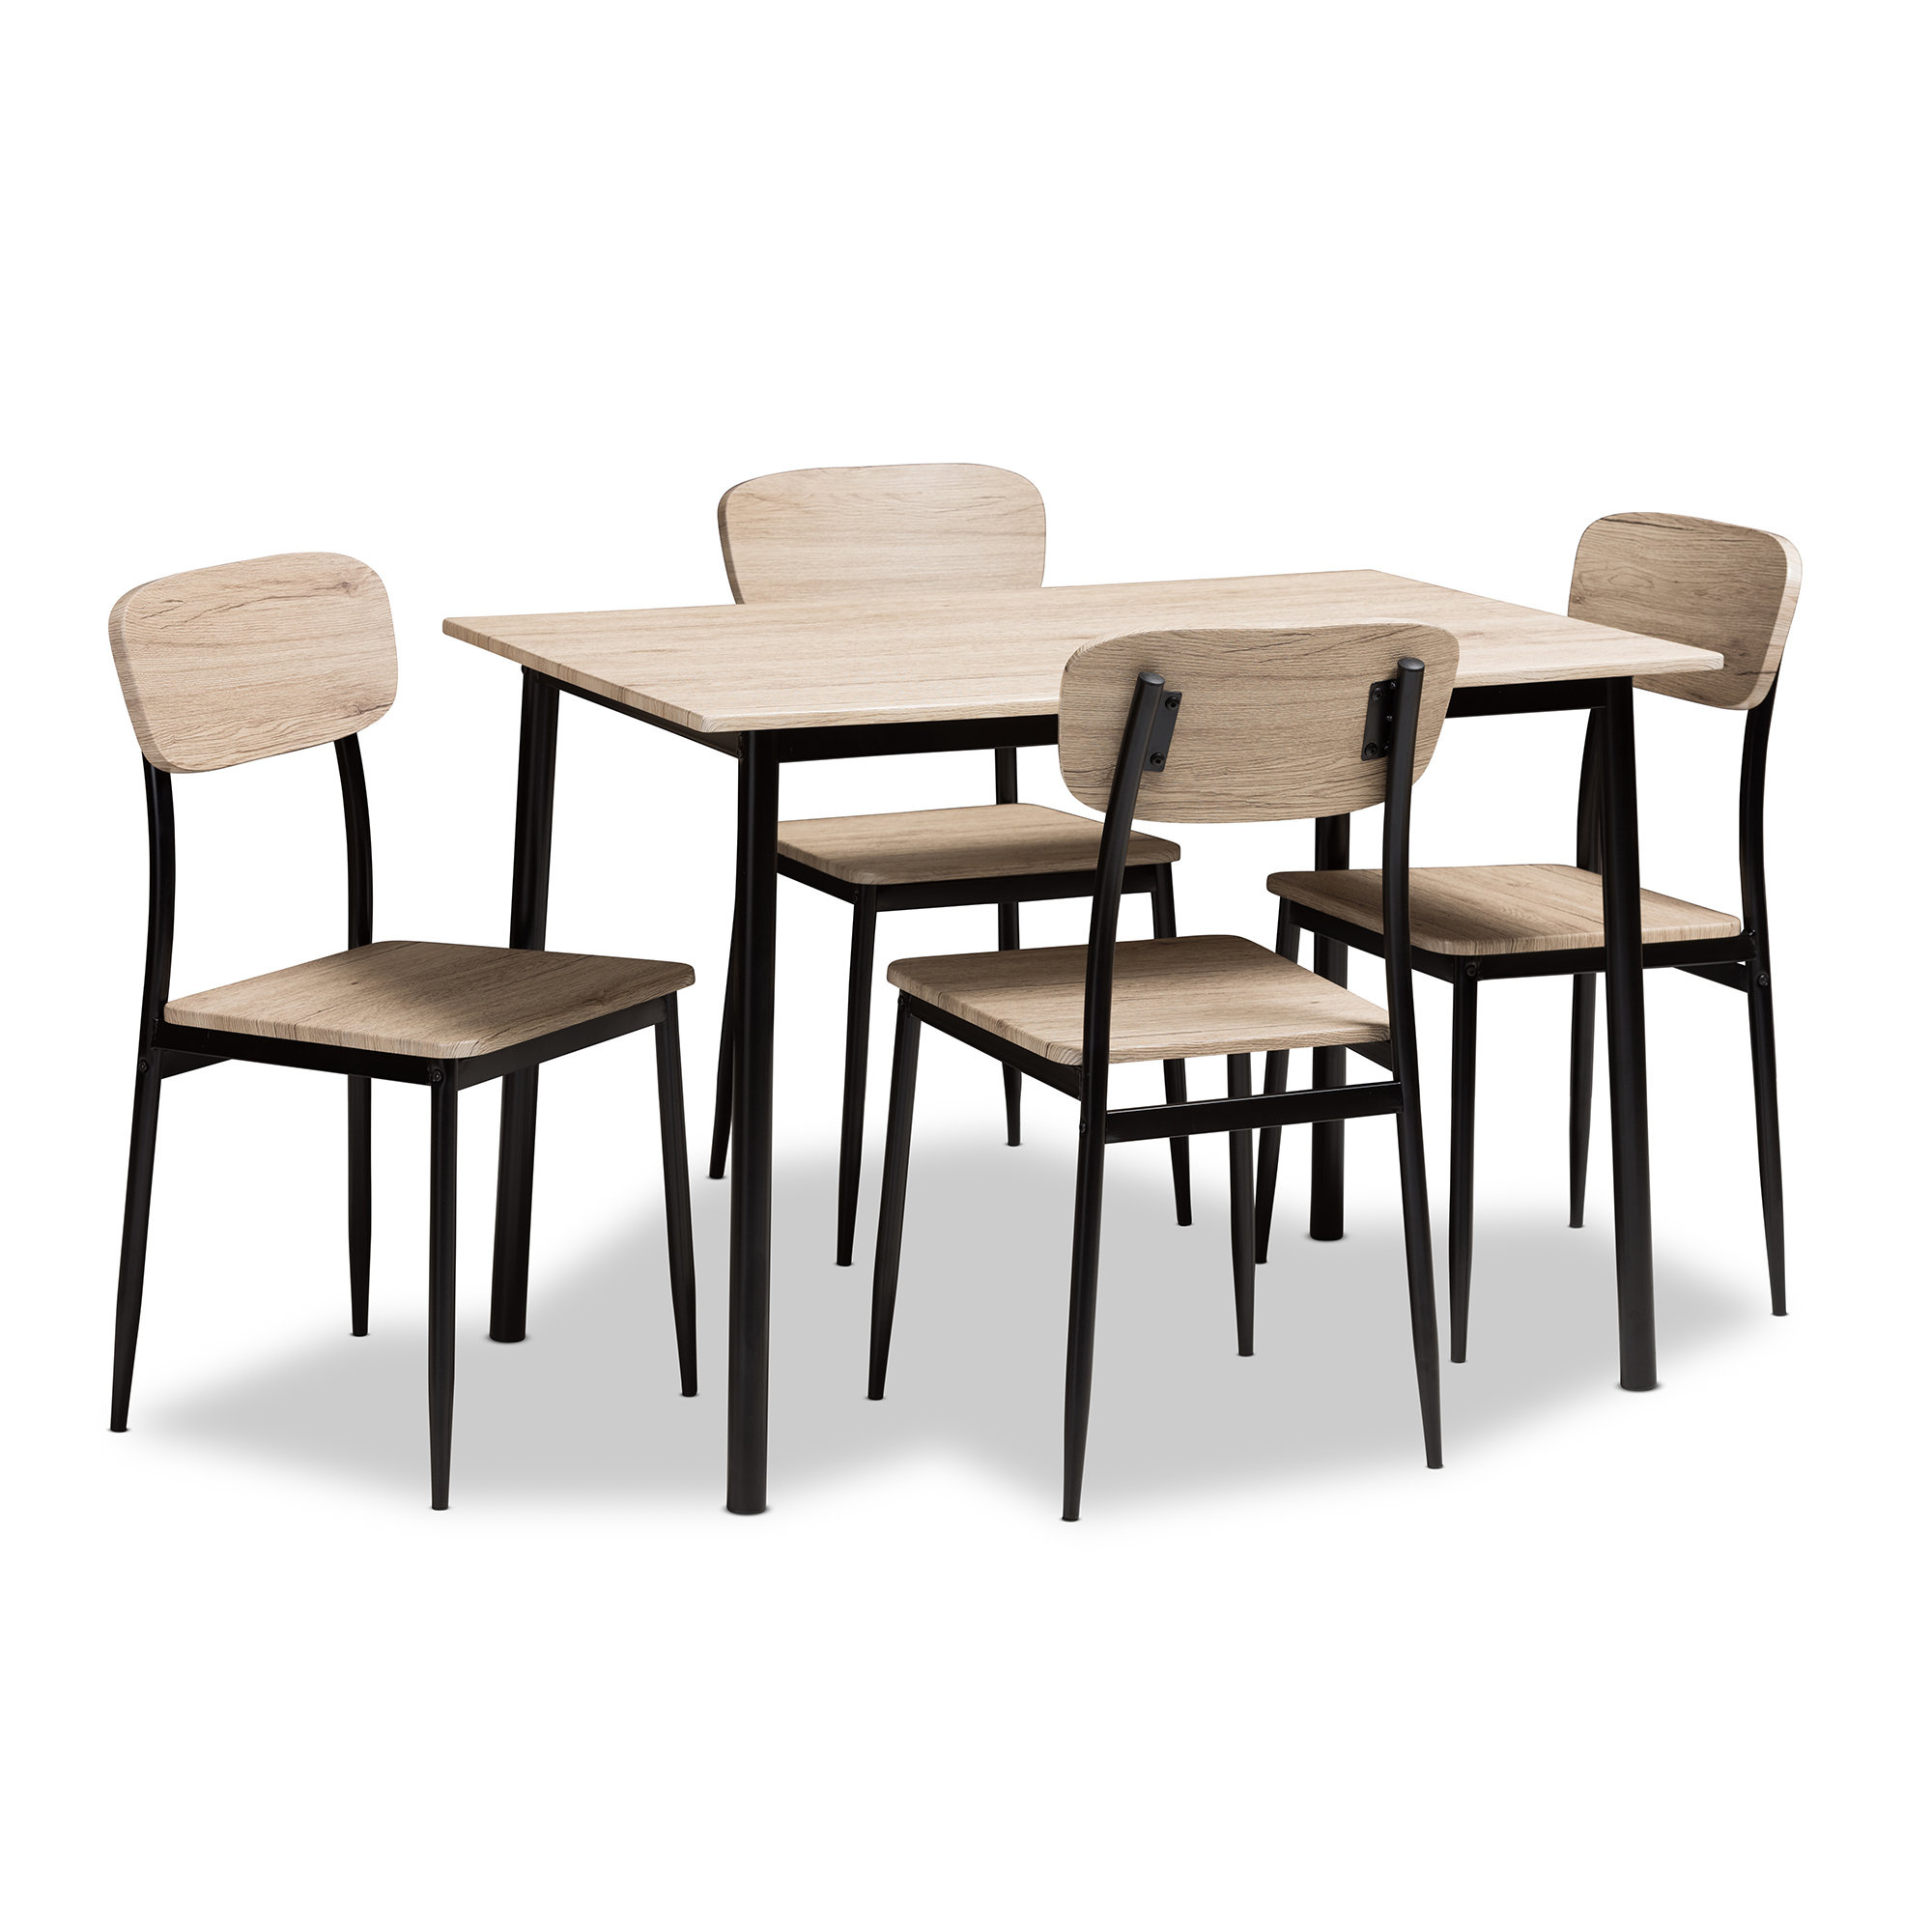 Wayfair For Trendy Partin 3 Piece Dining Sets (View 19 of 25)